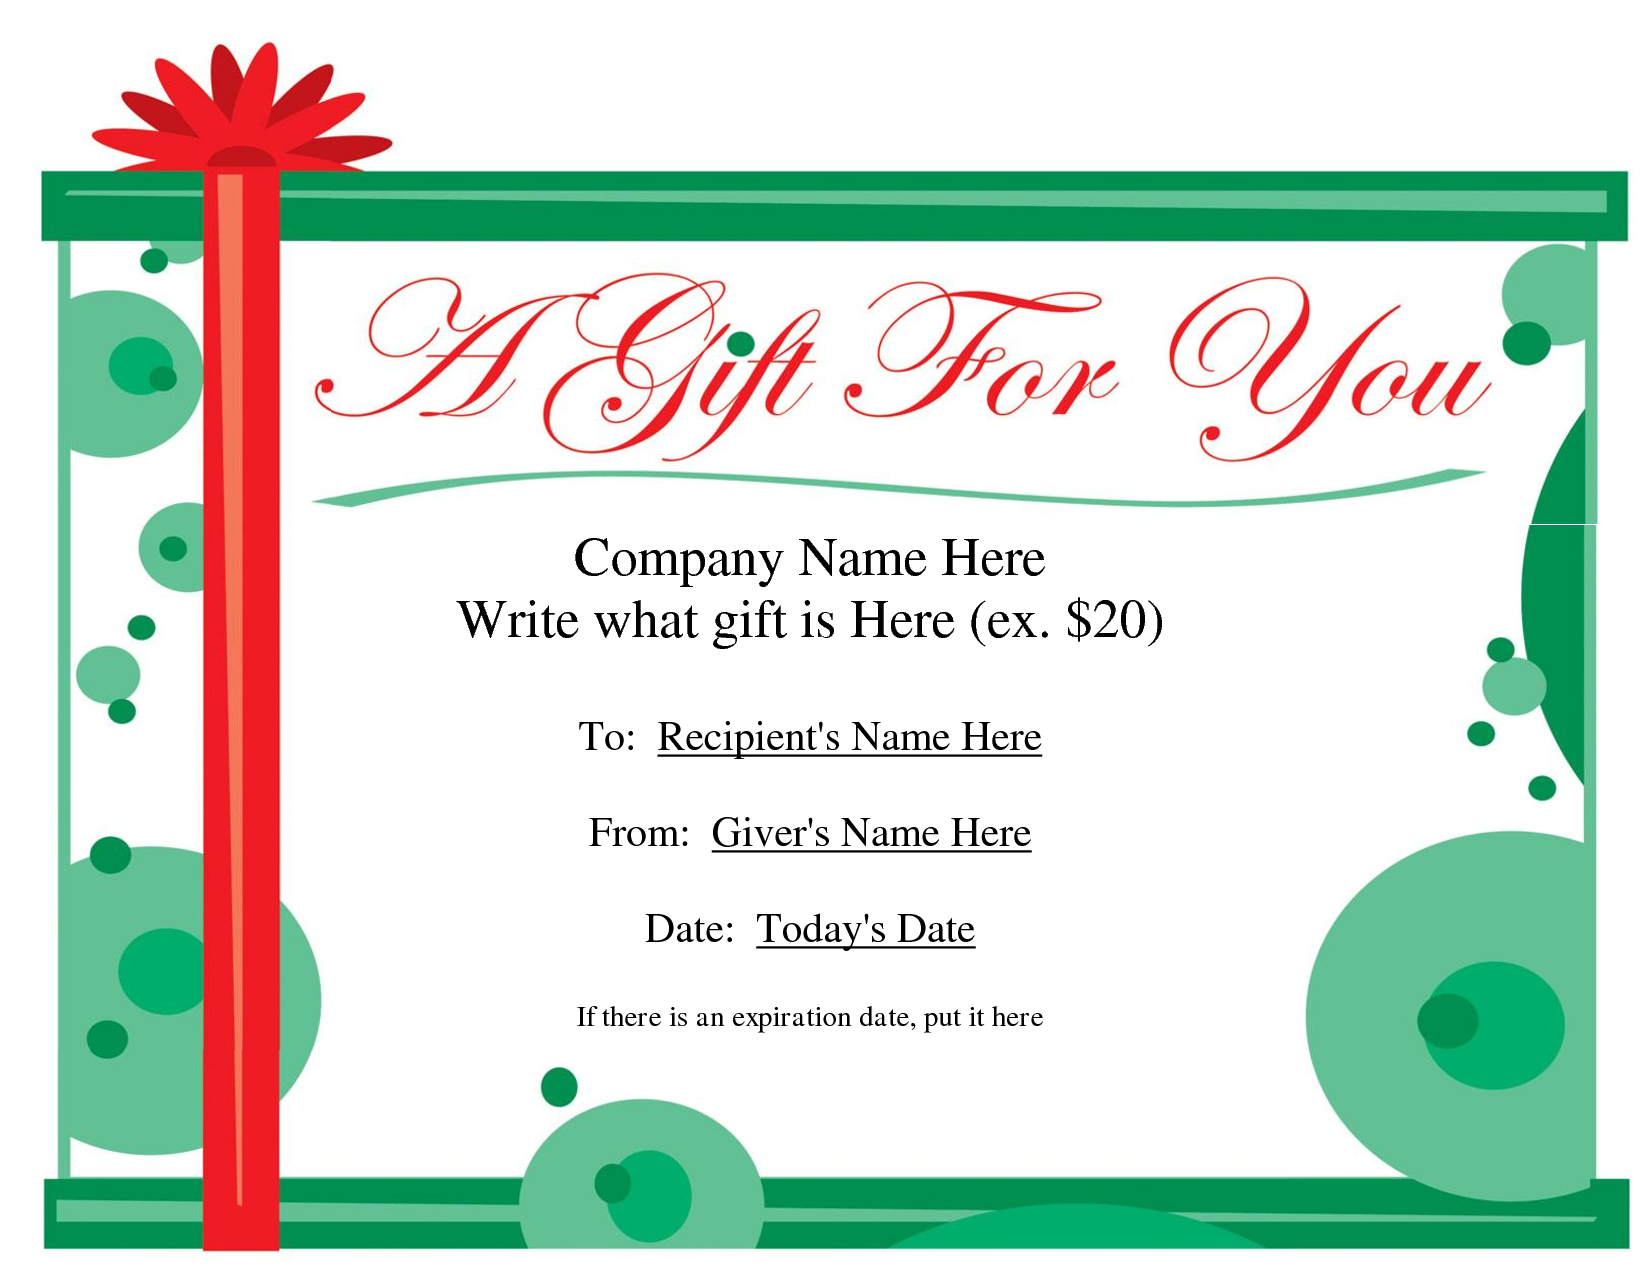 Free Christmas Gift Certificate Templates | Ideas For The House - Free Printable Photography Gift Certificate Template